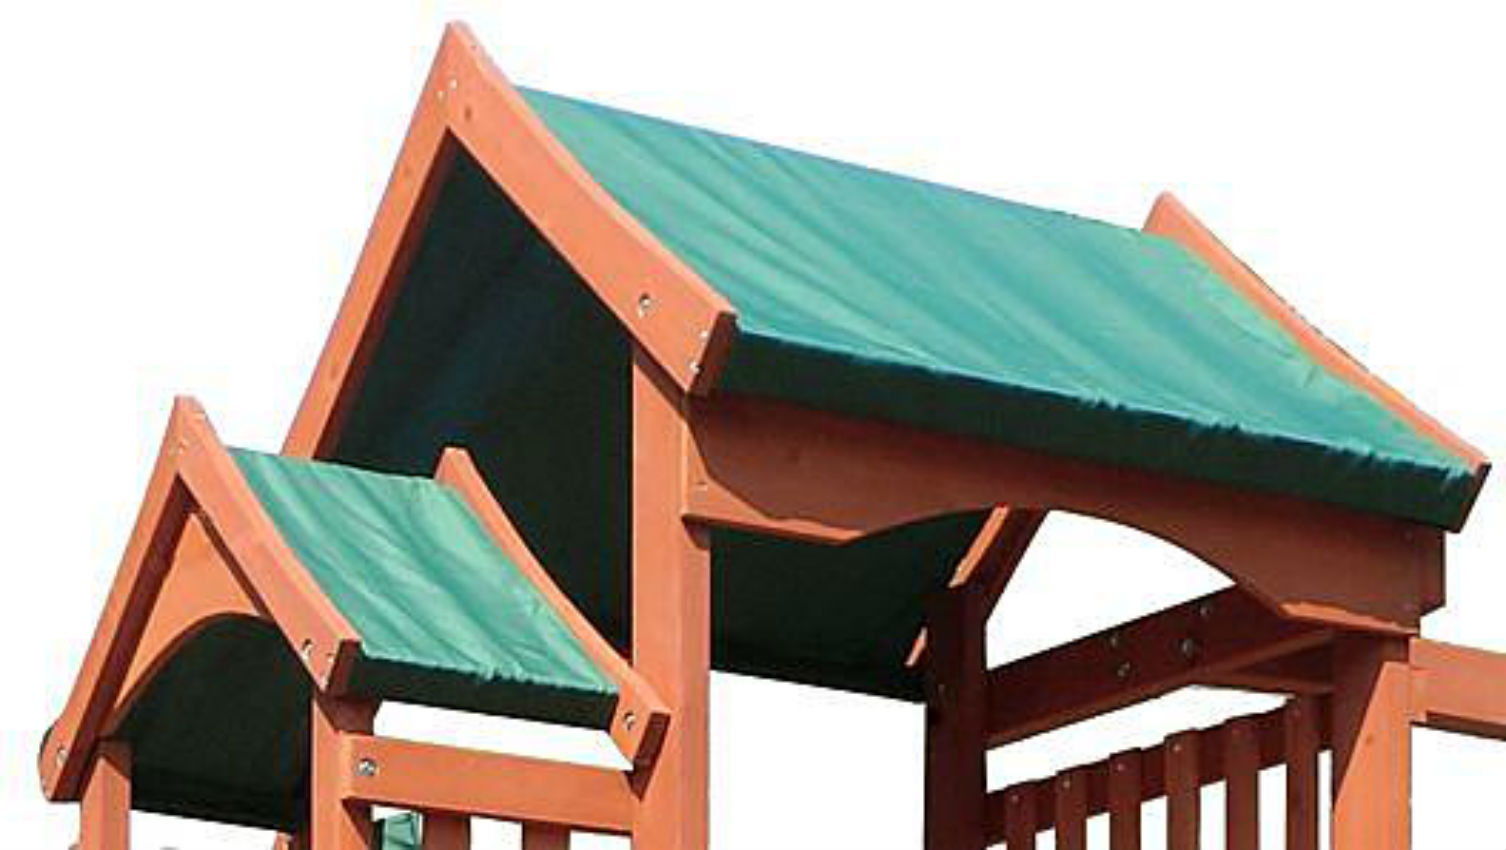 Sportspower Timber Play II With Balcony Swing Set